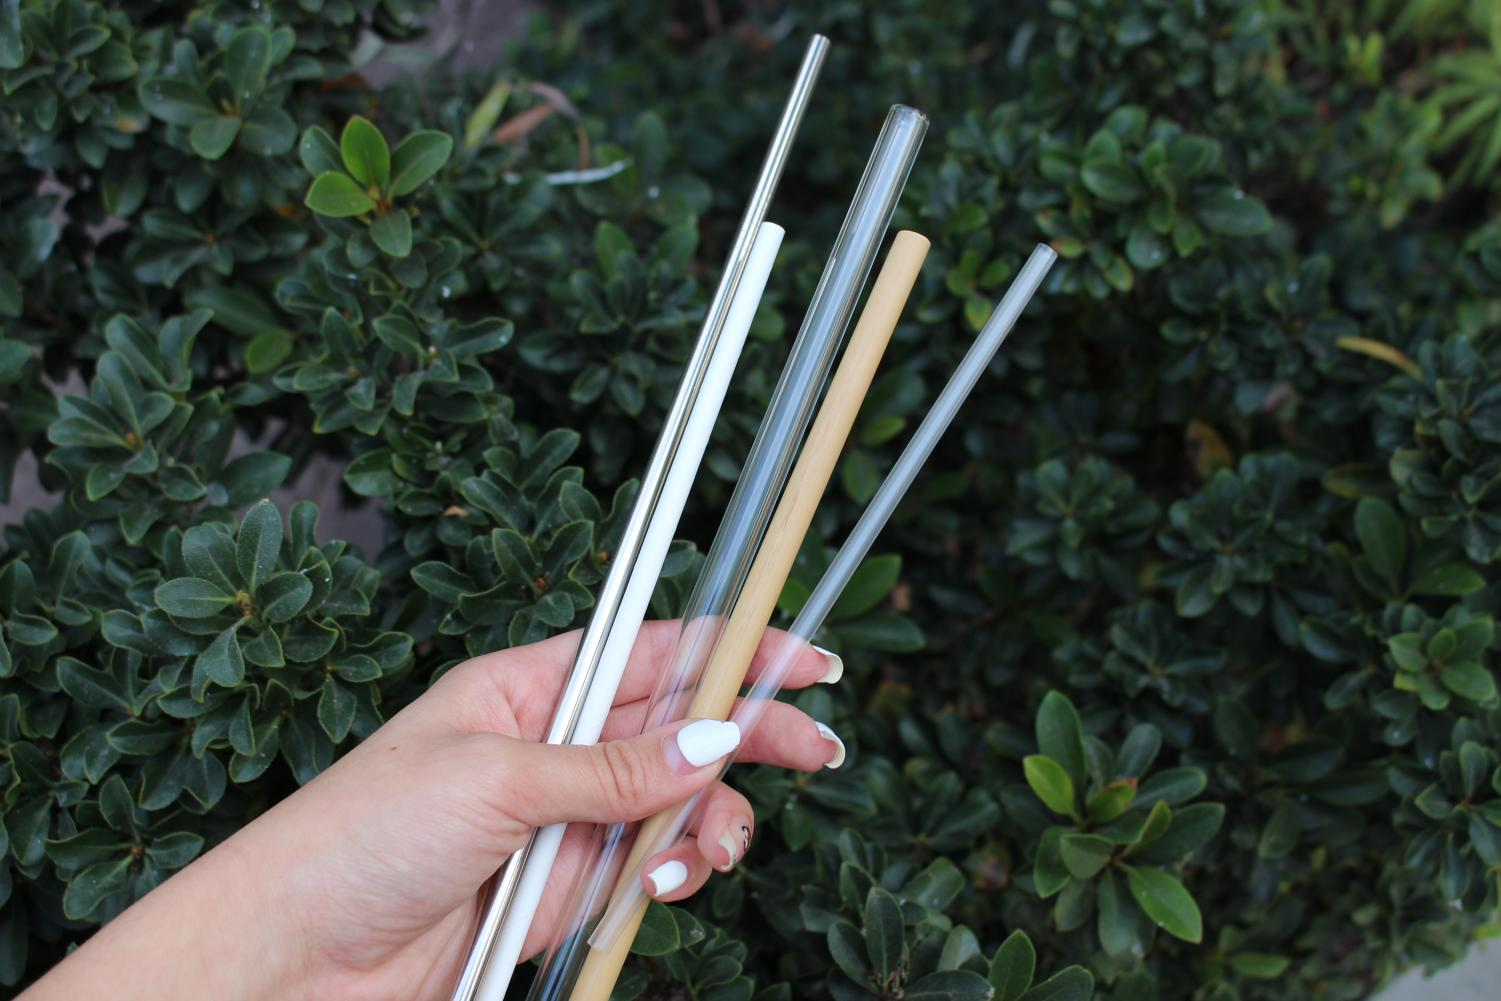 Metal, paper, glass and bamboo straws (pictured in order from left to right) are plastic straw alternatives that have grown in popularity recently due to concerns about the disposal of plastic straws. According to The New York Times, 170 to 390 million plastic straws are being used and dumped by Americans into the world's oceans every single day.